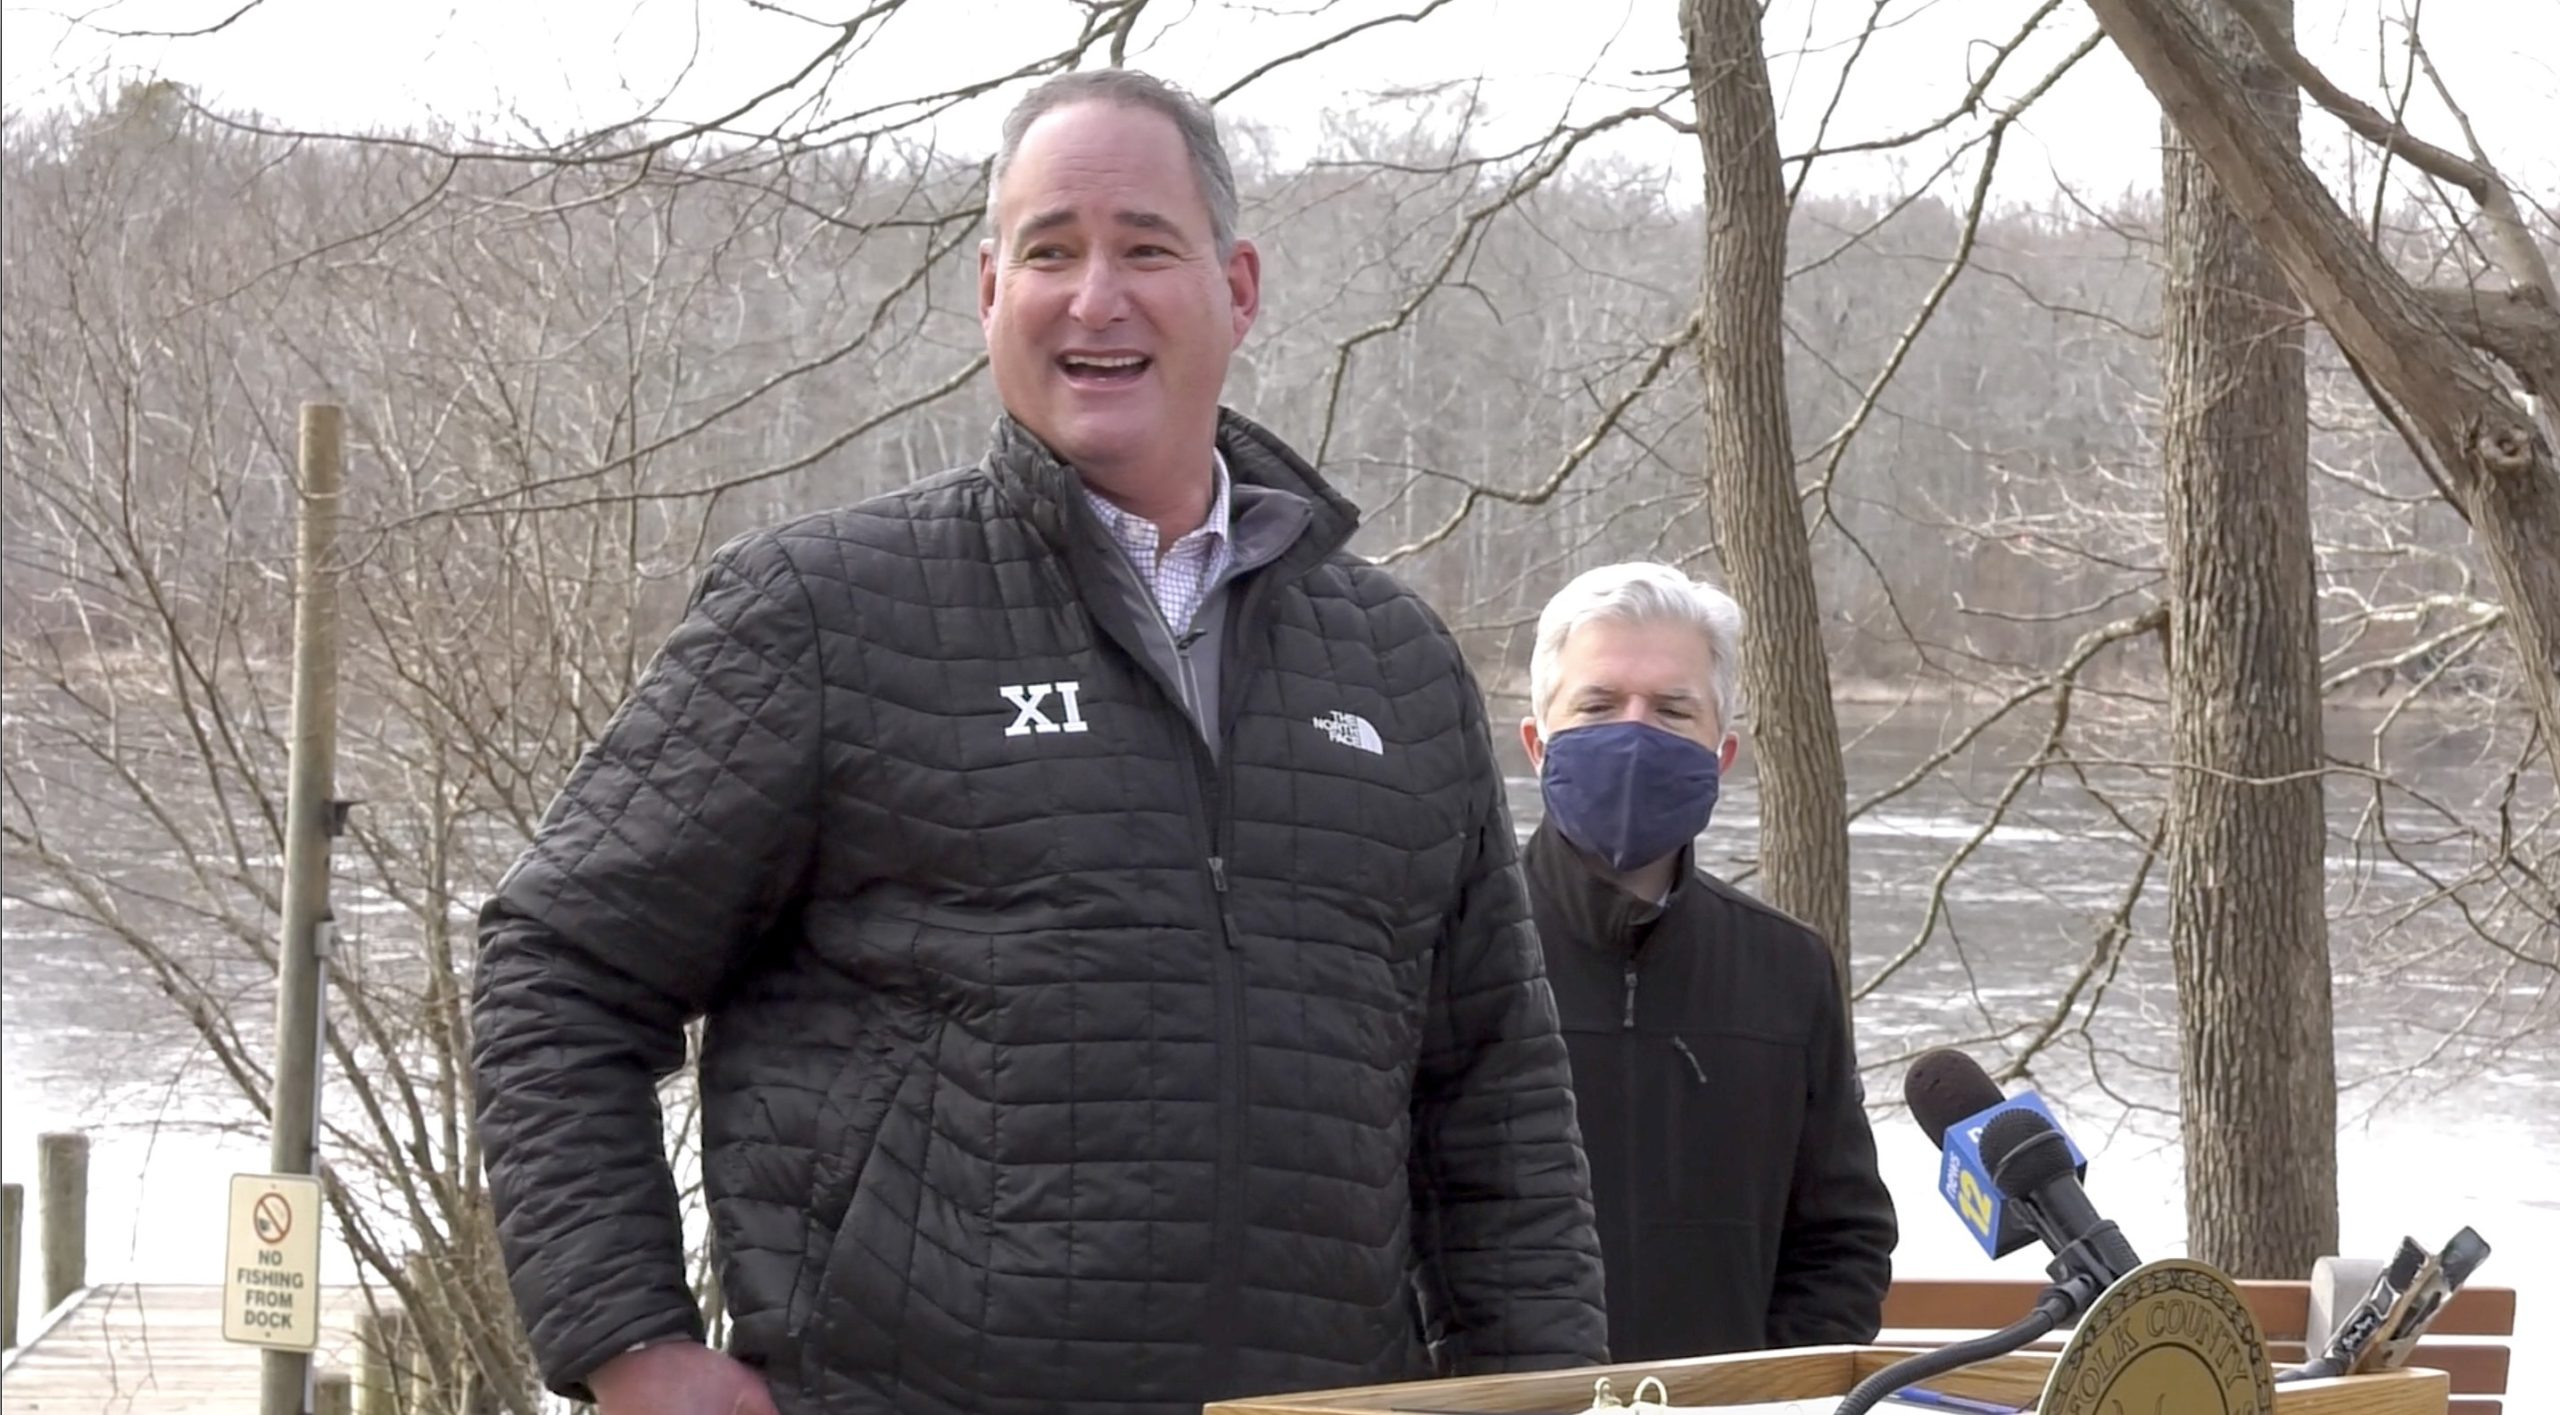 Section XI Executive Director Tom Combs discusses how happy he is to see student-athletes in school districts that play sports deemed high-risk by the state being given approval to practice and compete at a press conference at Blydenburgh County Park in Smithtown January 25.